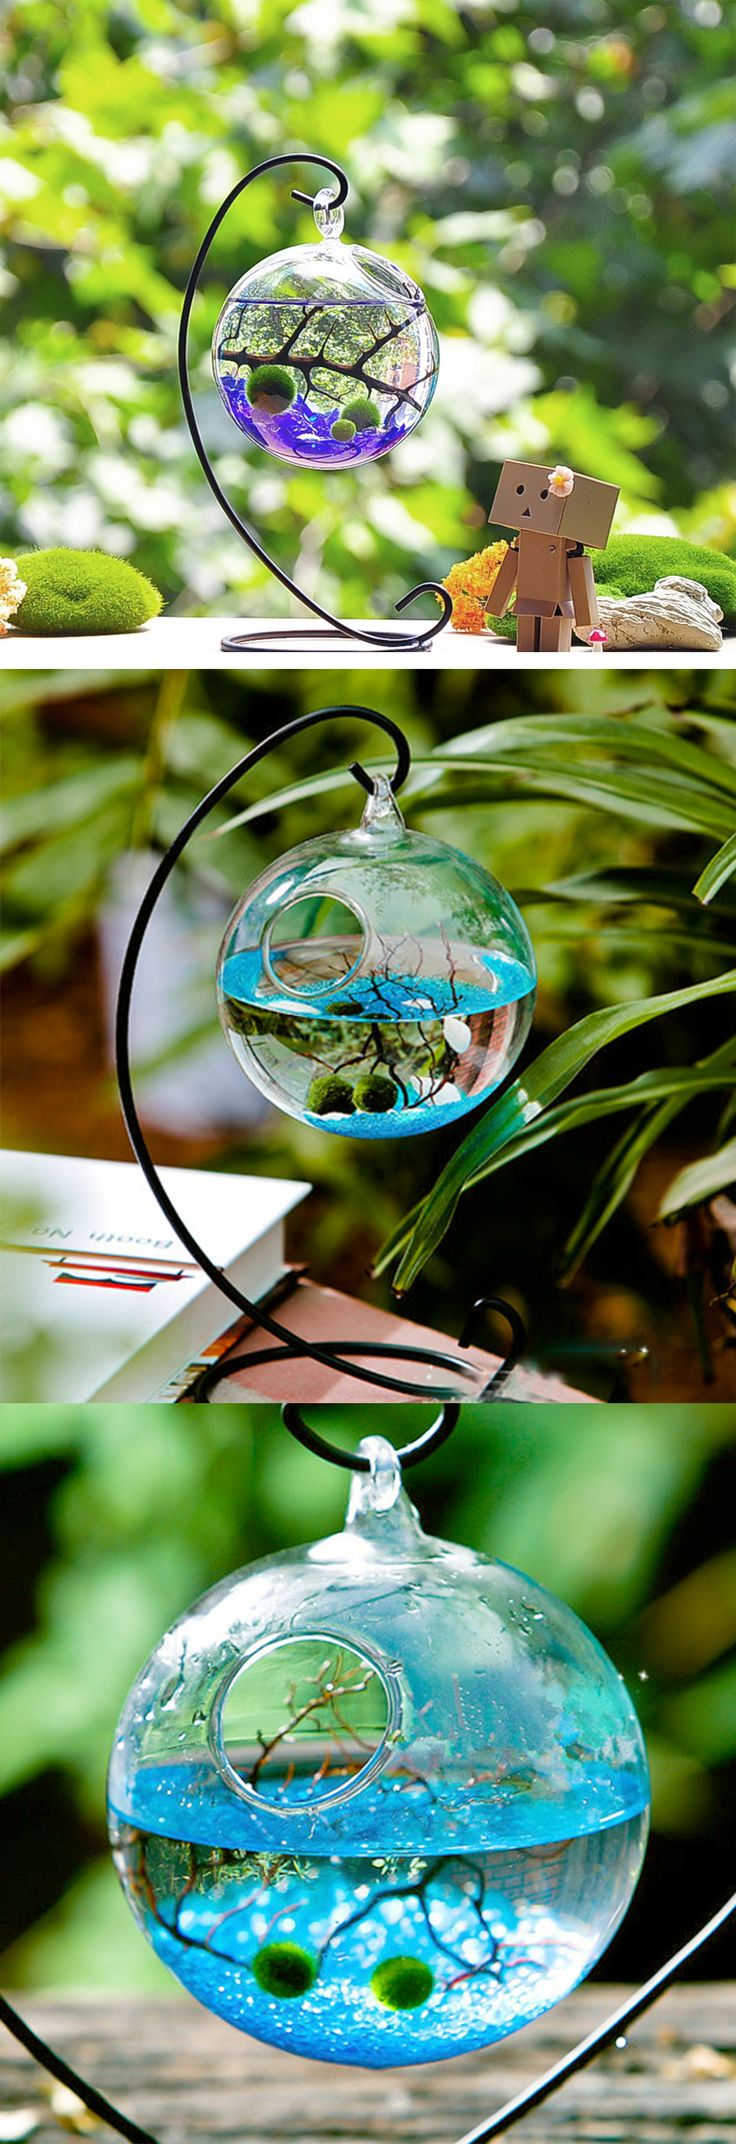 Marimo Aquarium Kit (Metal Stand